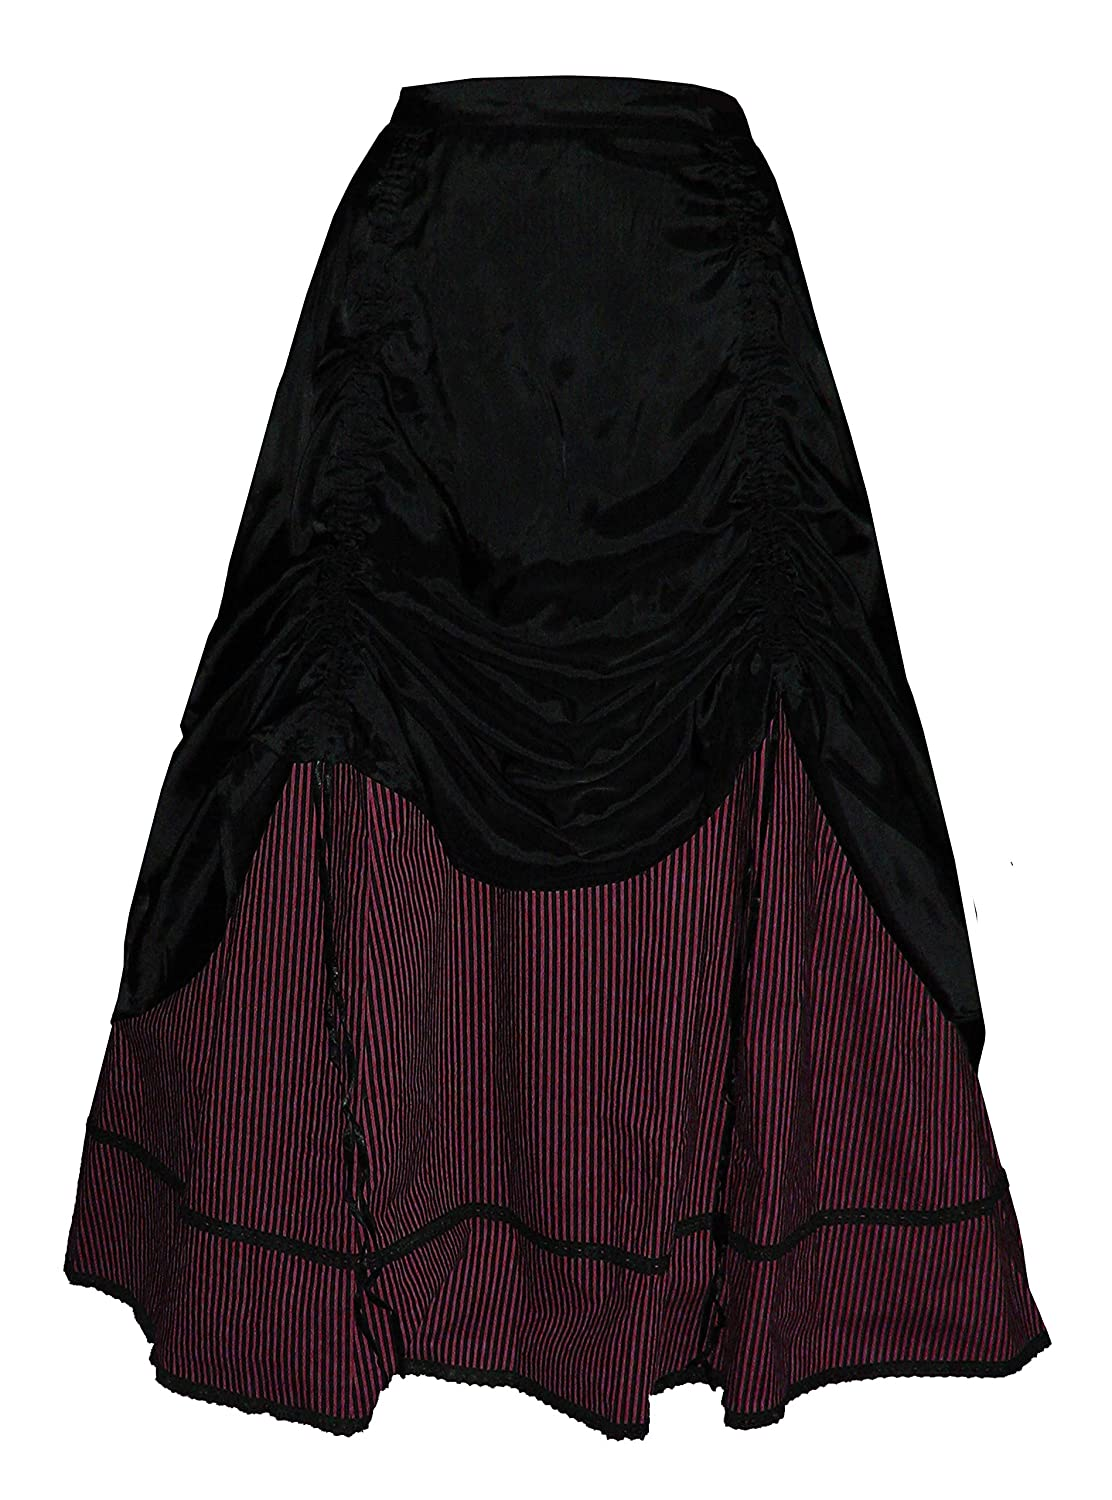 Steampunk Skirts | Bustle Skirts, Lace Skirts, Ruffle Skirts Funhouse Victorian Valentine Steampunk Gothic Civil War Striped Womens & Skirt $77.00 AT vintagedancer.com